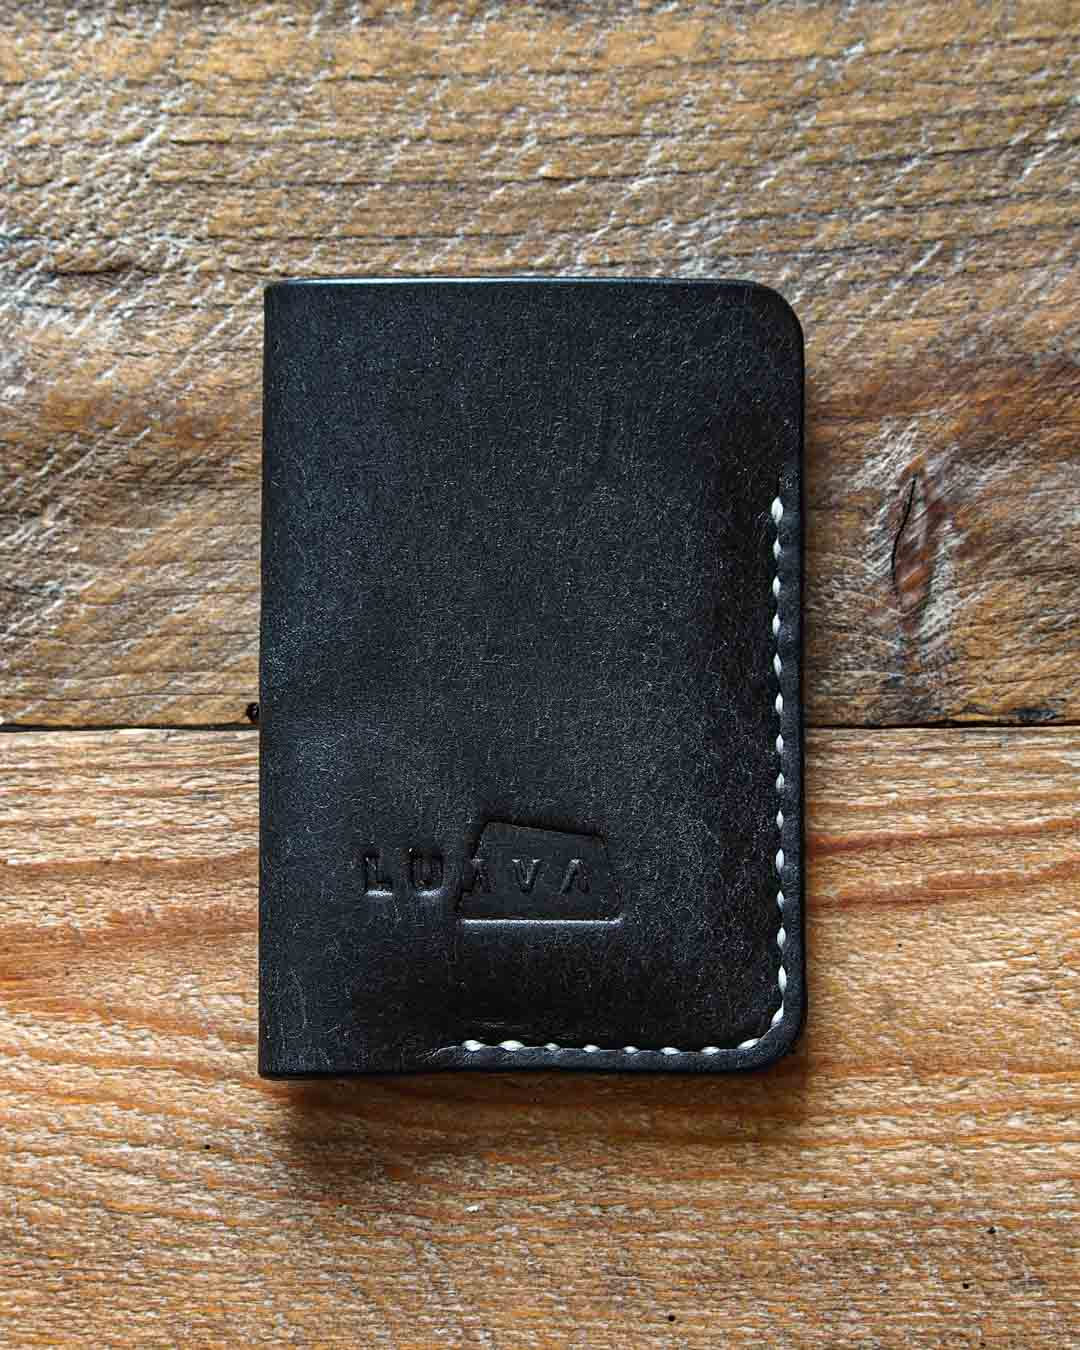 Luava leather card holder pueblo black wallet white thread